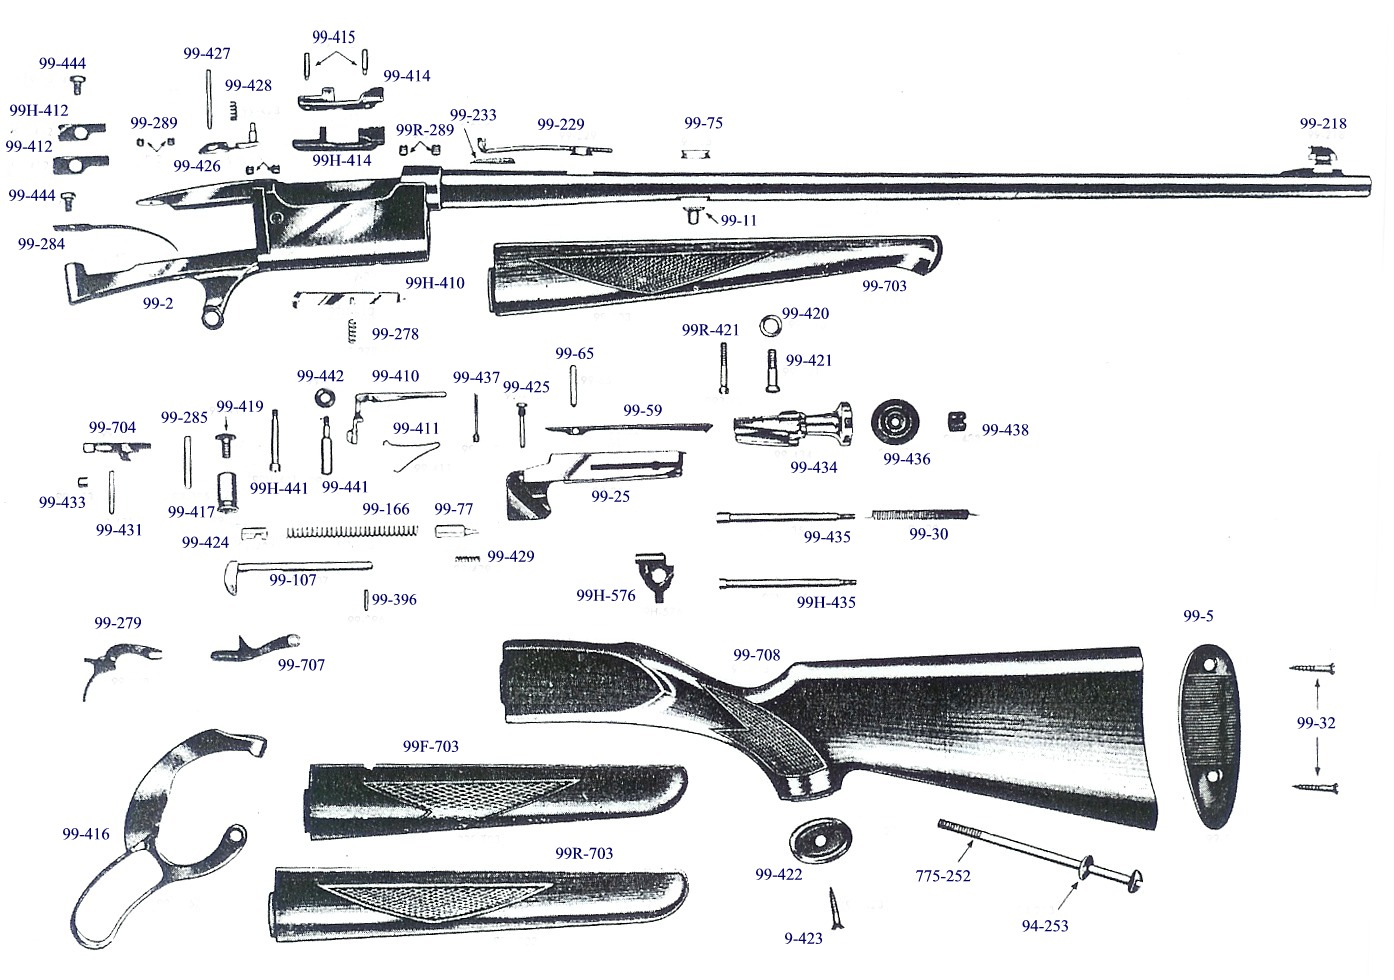 The illustration shown above is from a original factoryparts list